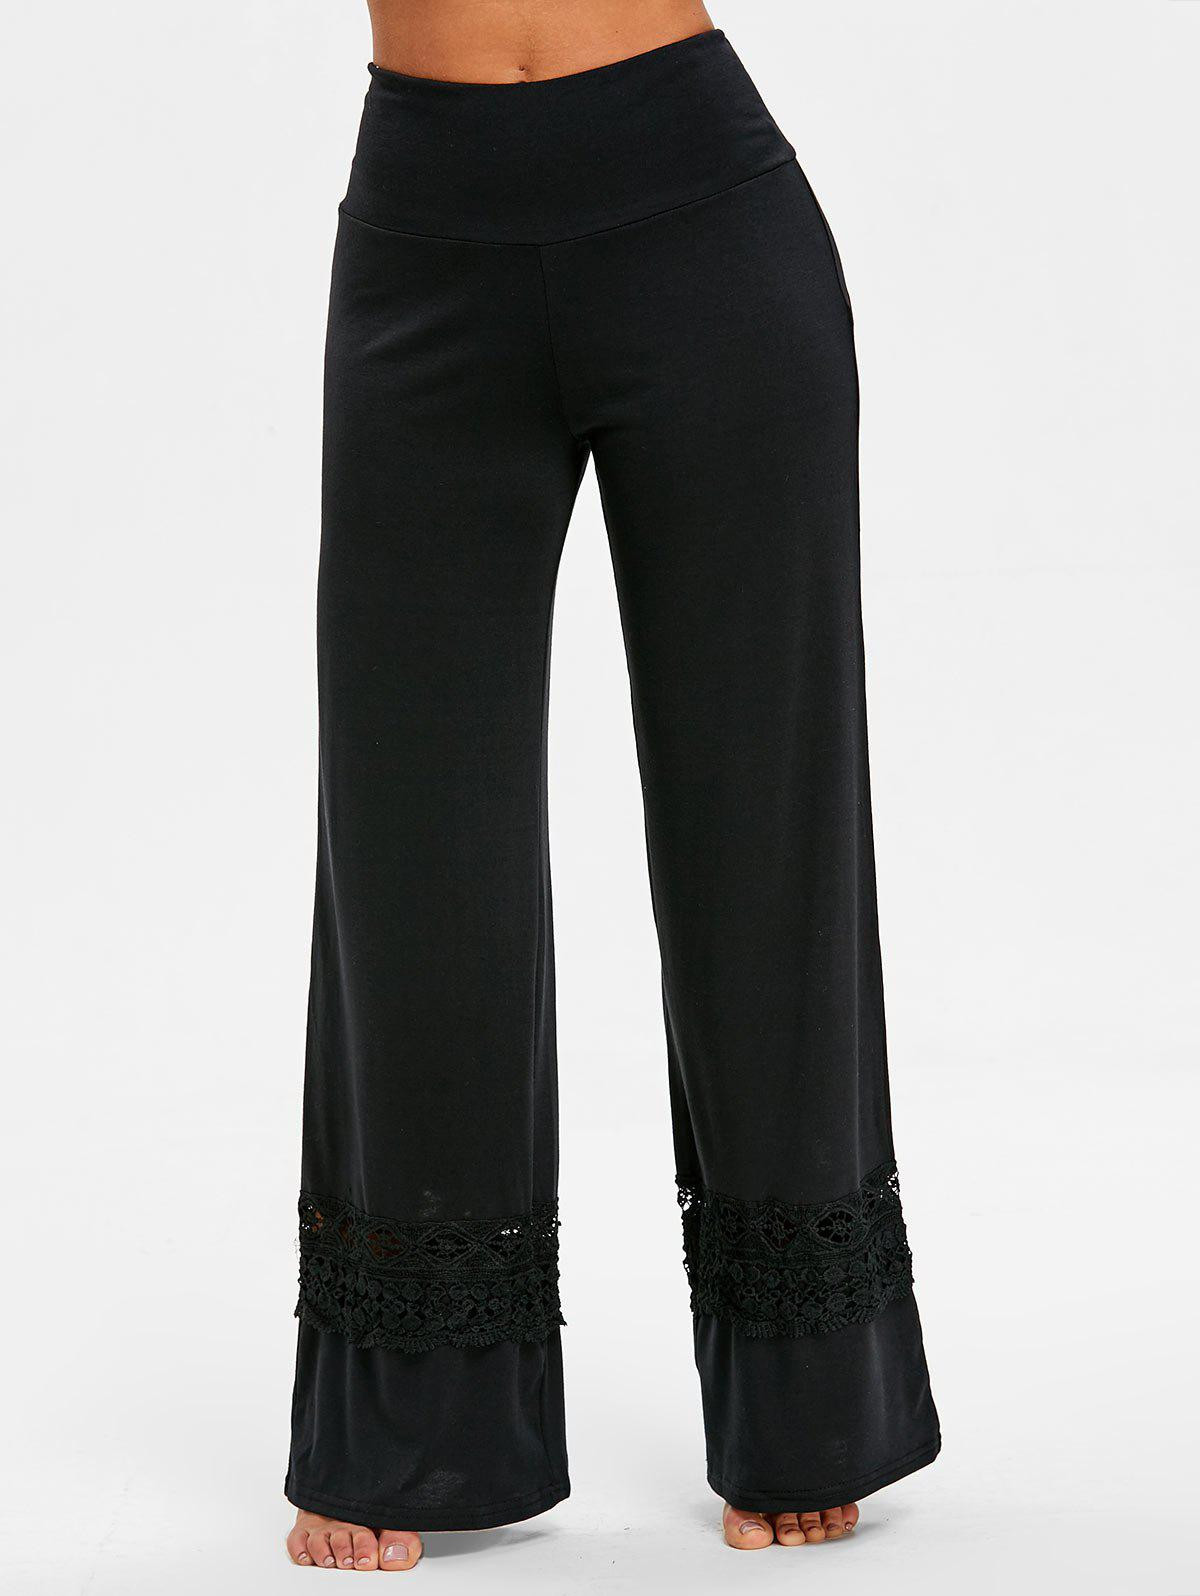 High Rise Lace Panel Palazzo Pants - BLACK L